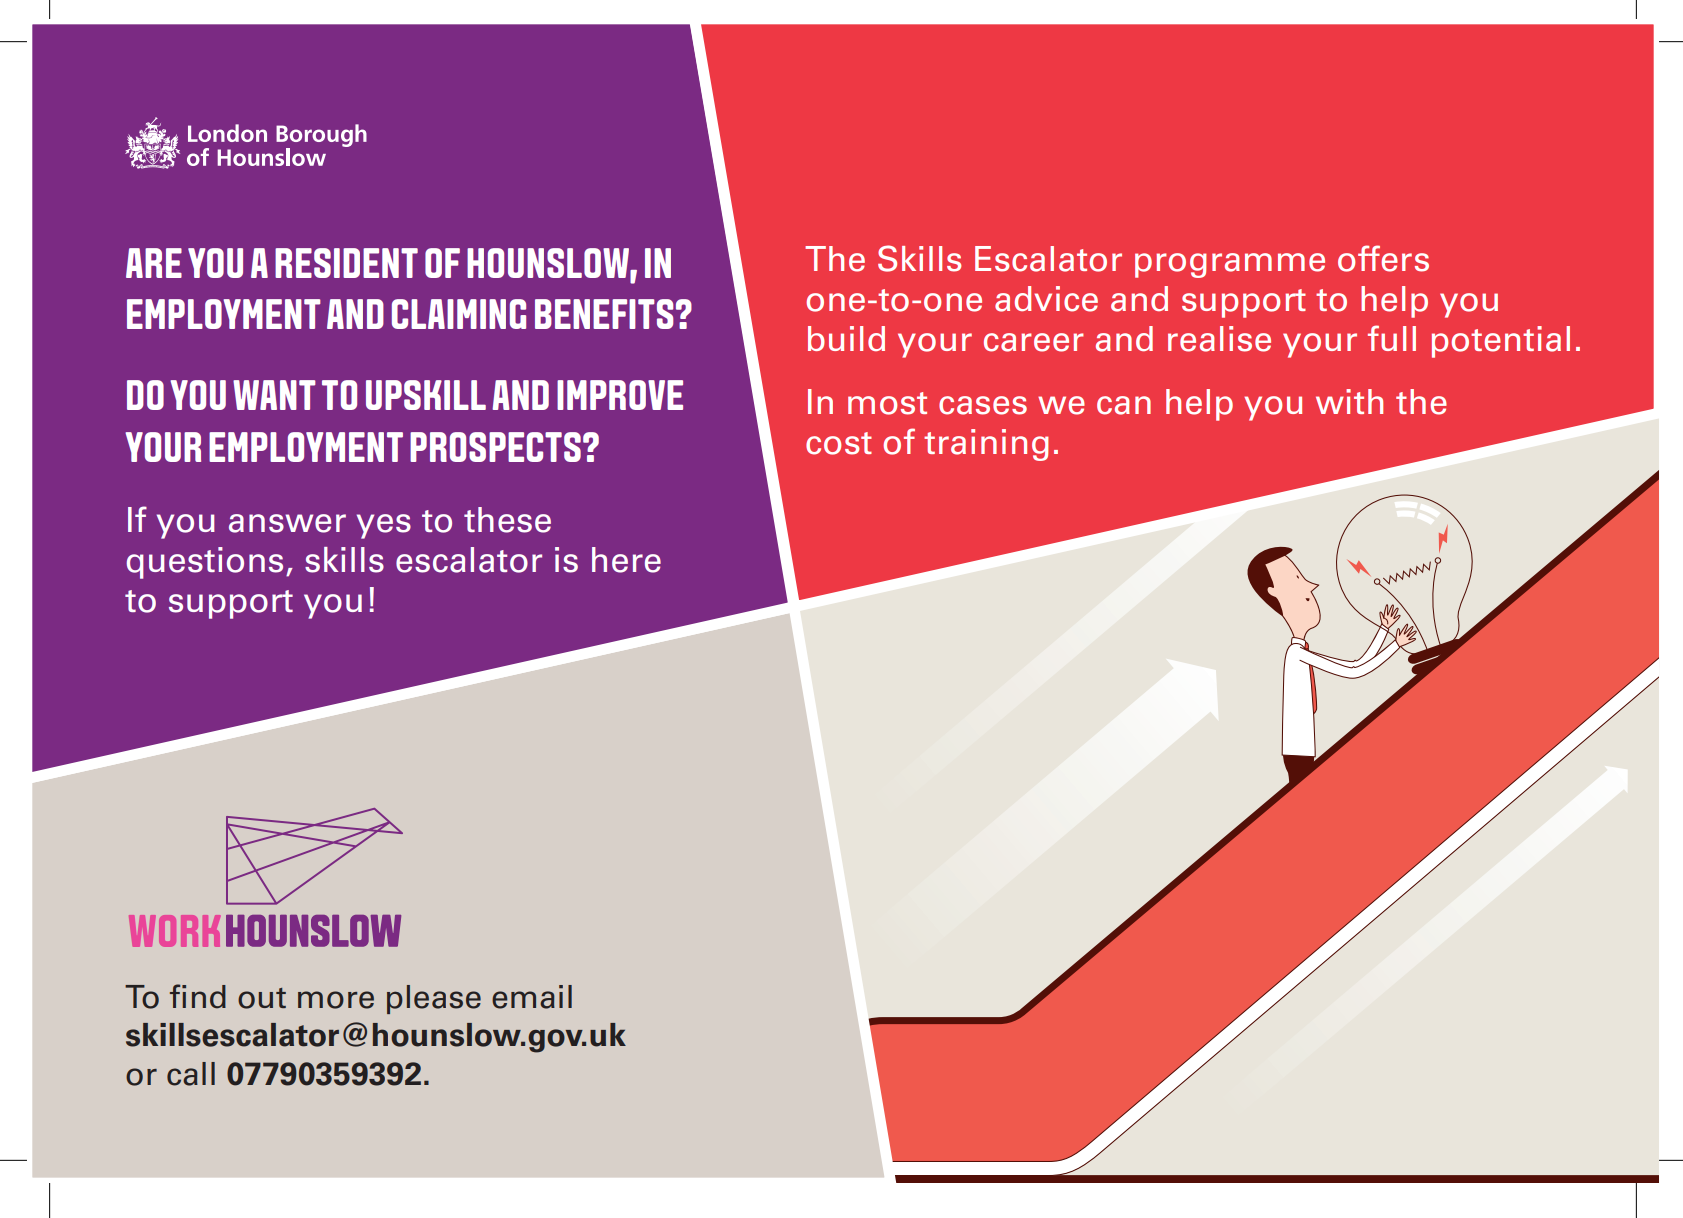 The Skills Escalator Programme